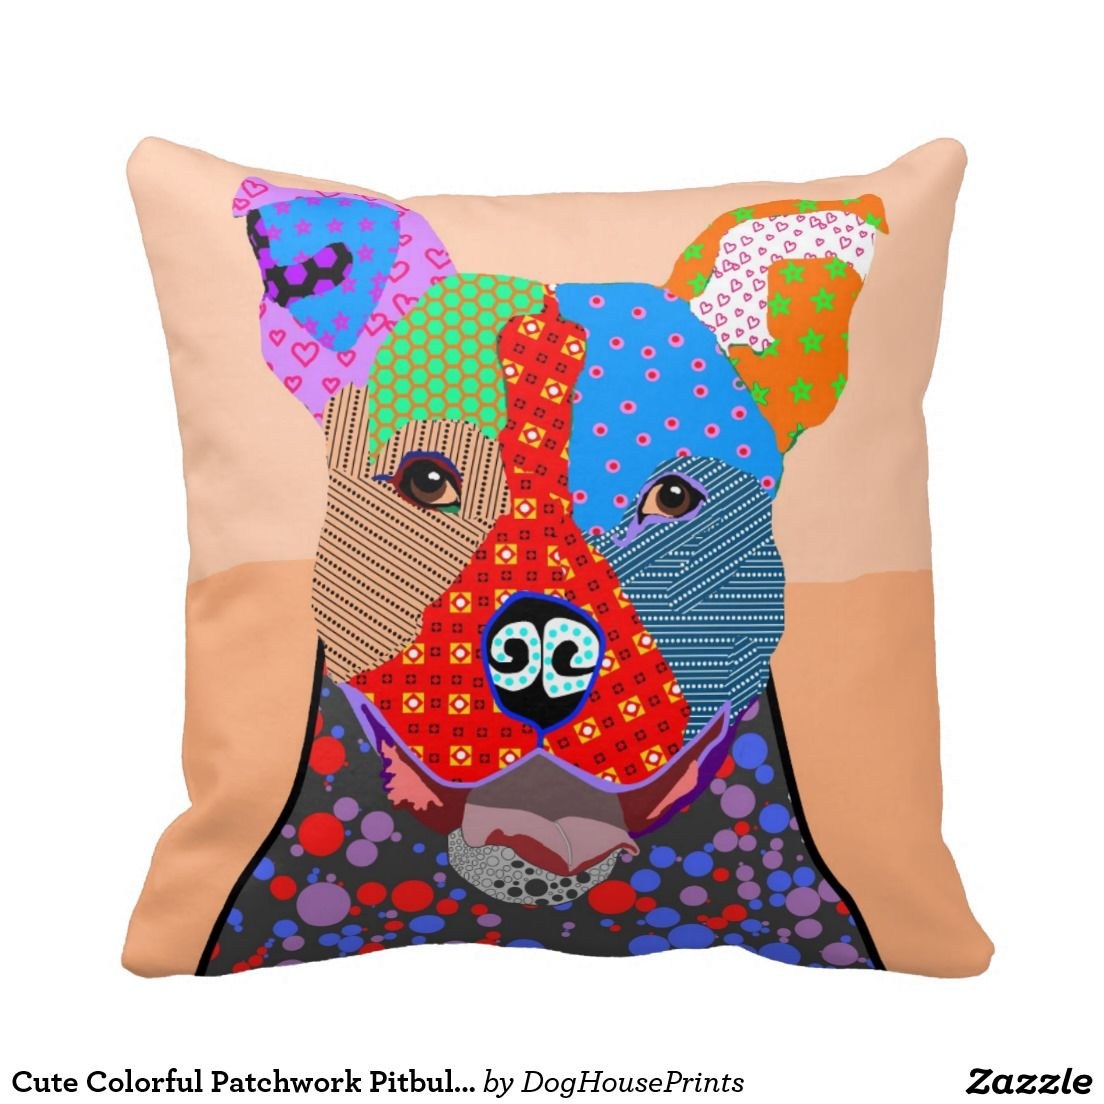 Cute Colorful Patchwork Pitbull Dog Pillows